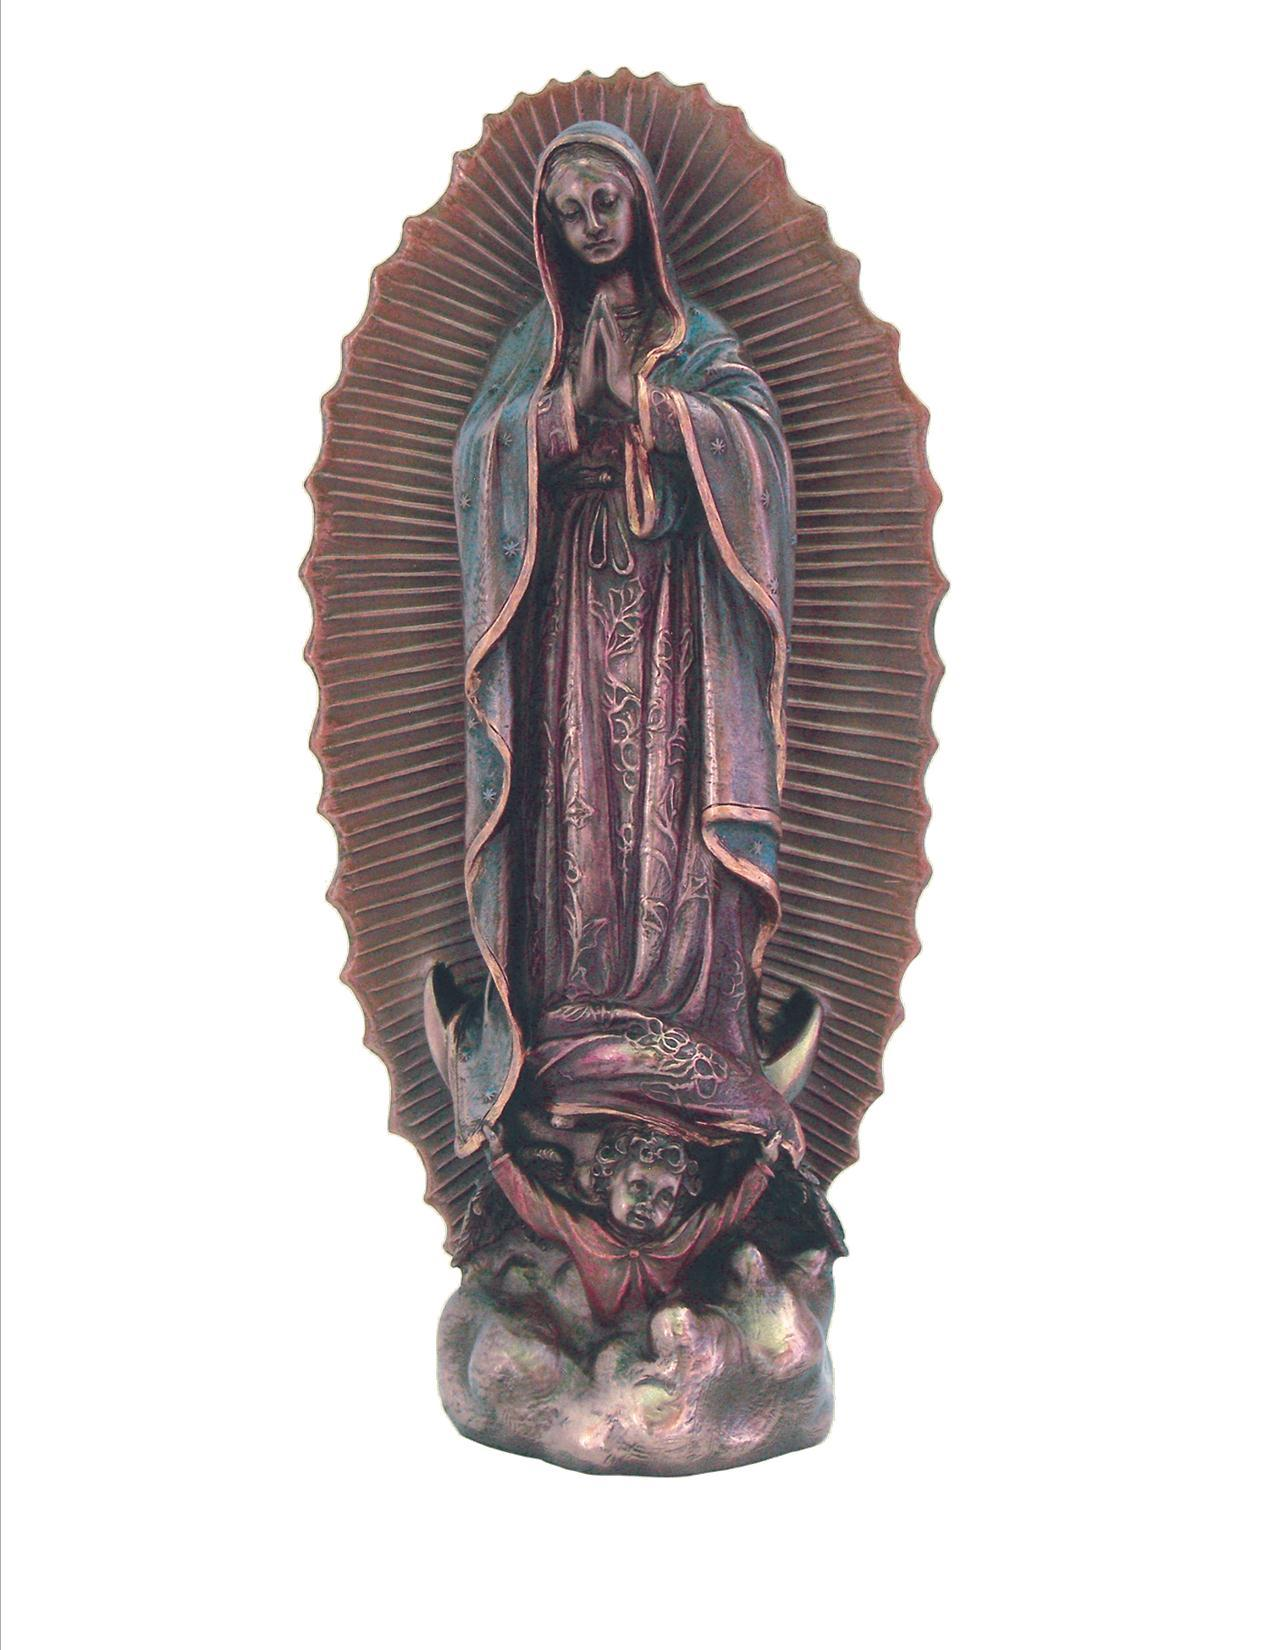 Our Lady of Guadalupe - Veronese, bronzed resin, 9.5 inch